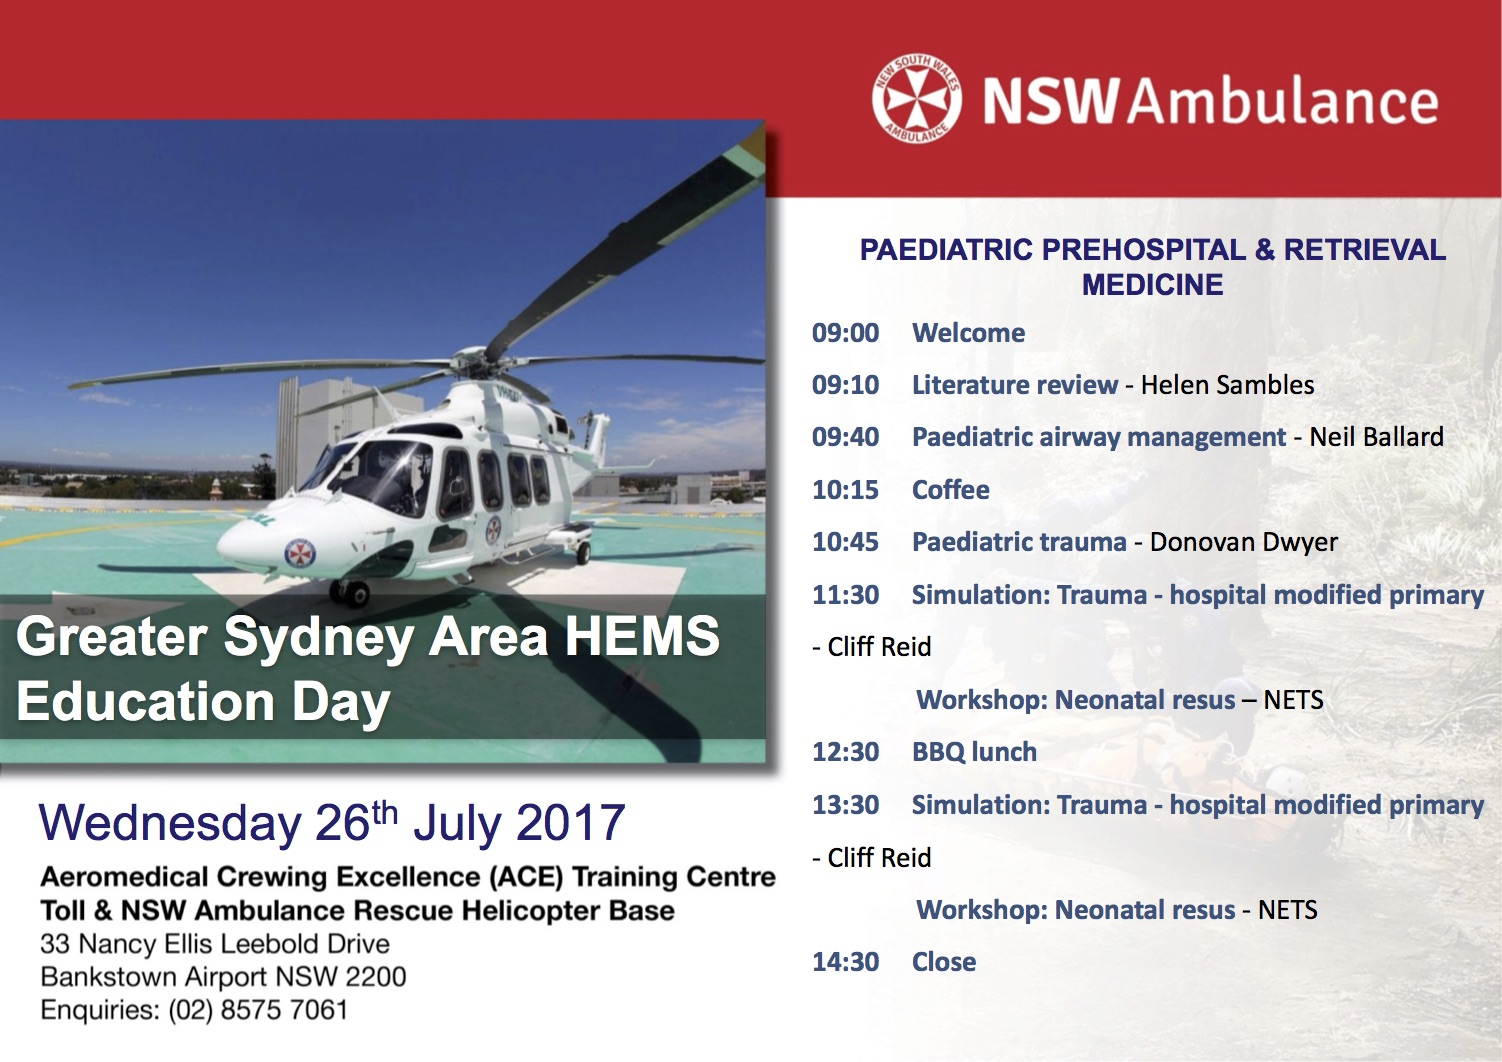 nsw ambulance clinical guideline paediatric sepsis